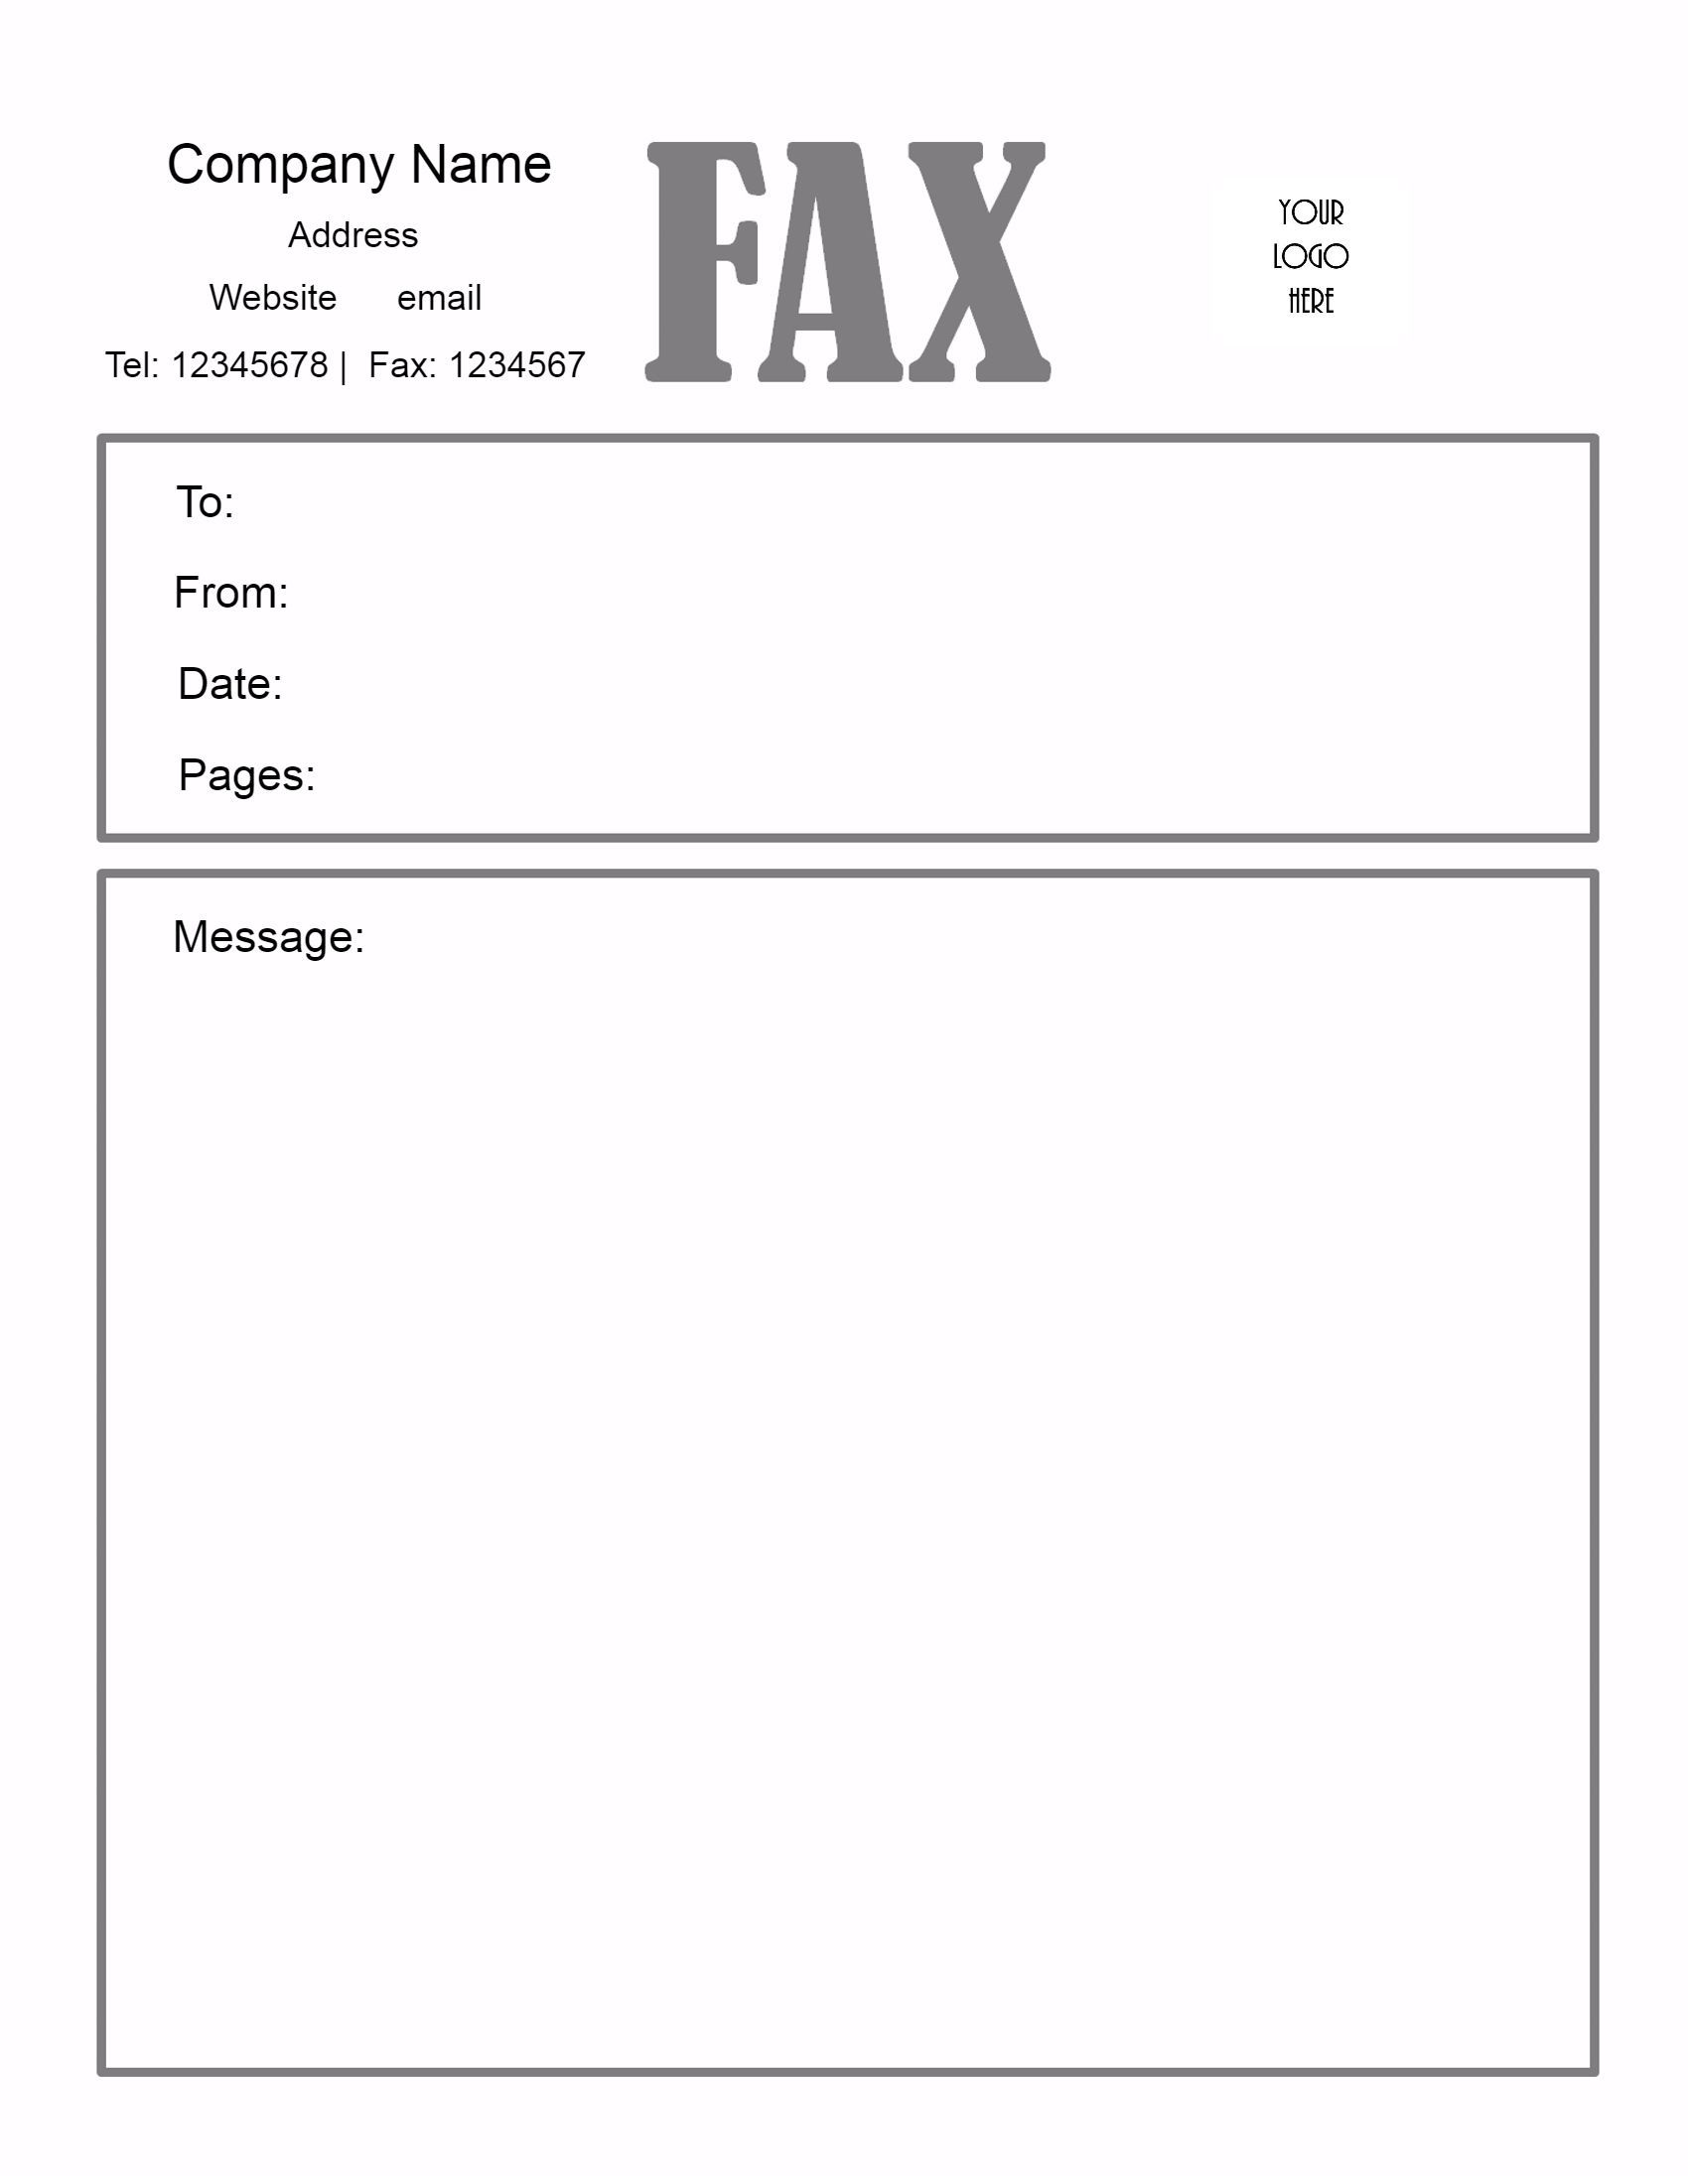 How Does A Fax Cover Sheet Look Like Printable Fax Cover Sheet